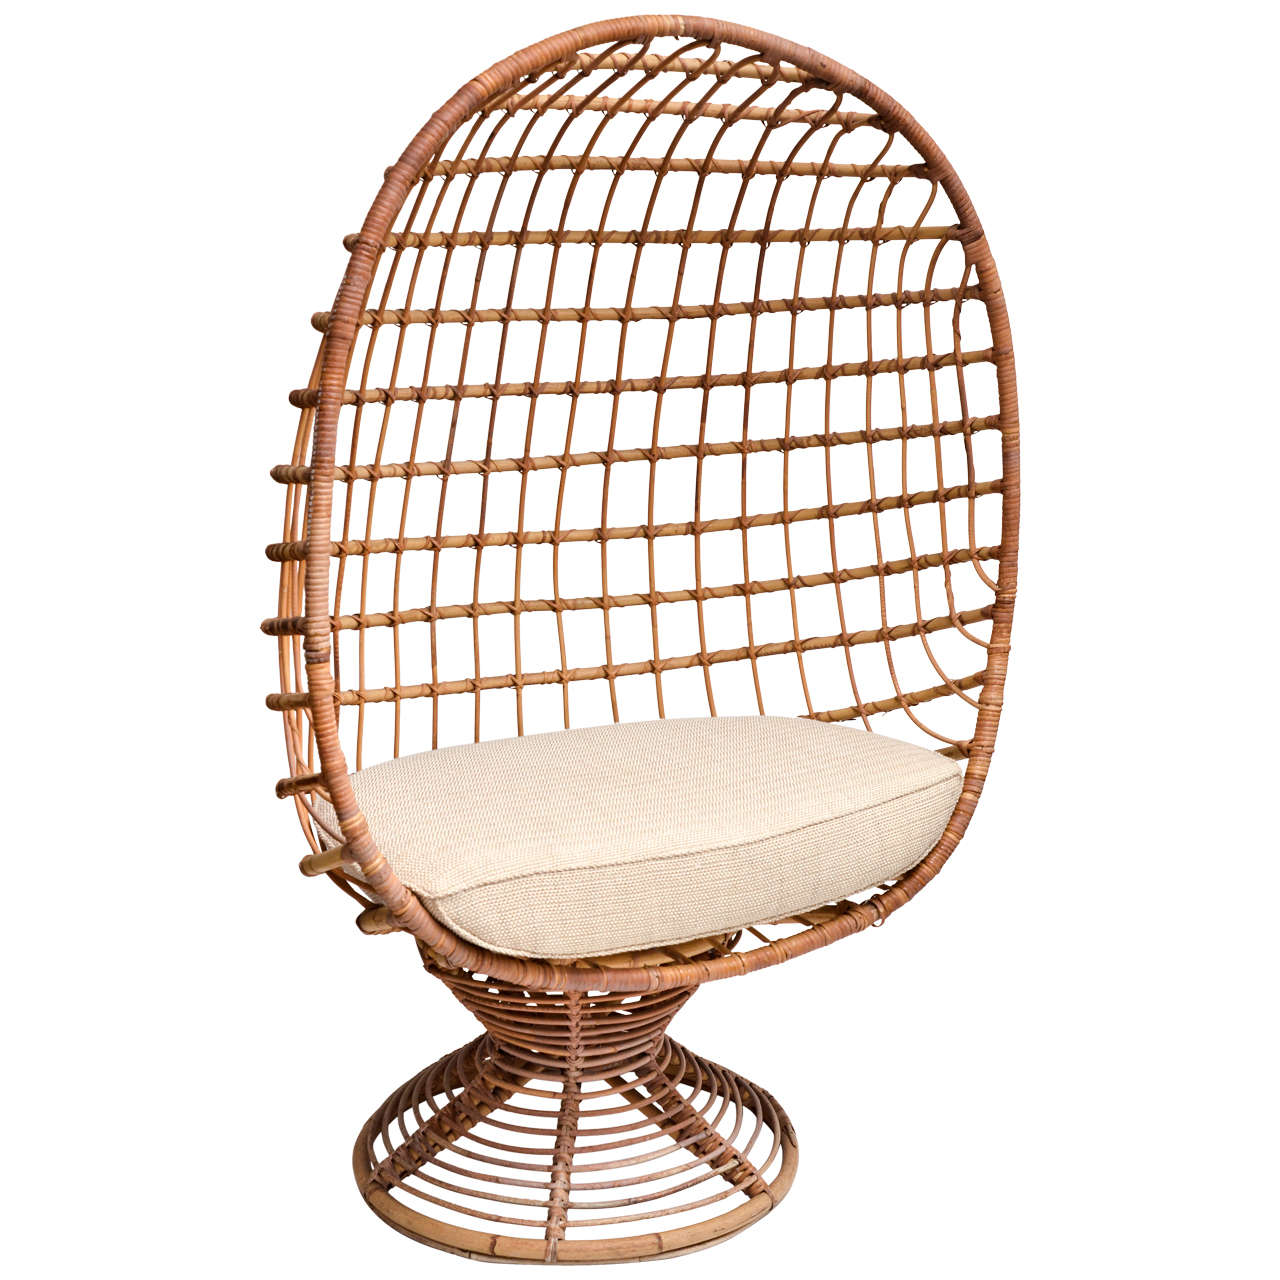 Enclosed Bamboo Canopy Chair with Upholstered Seat Cushion For Sale